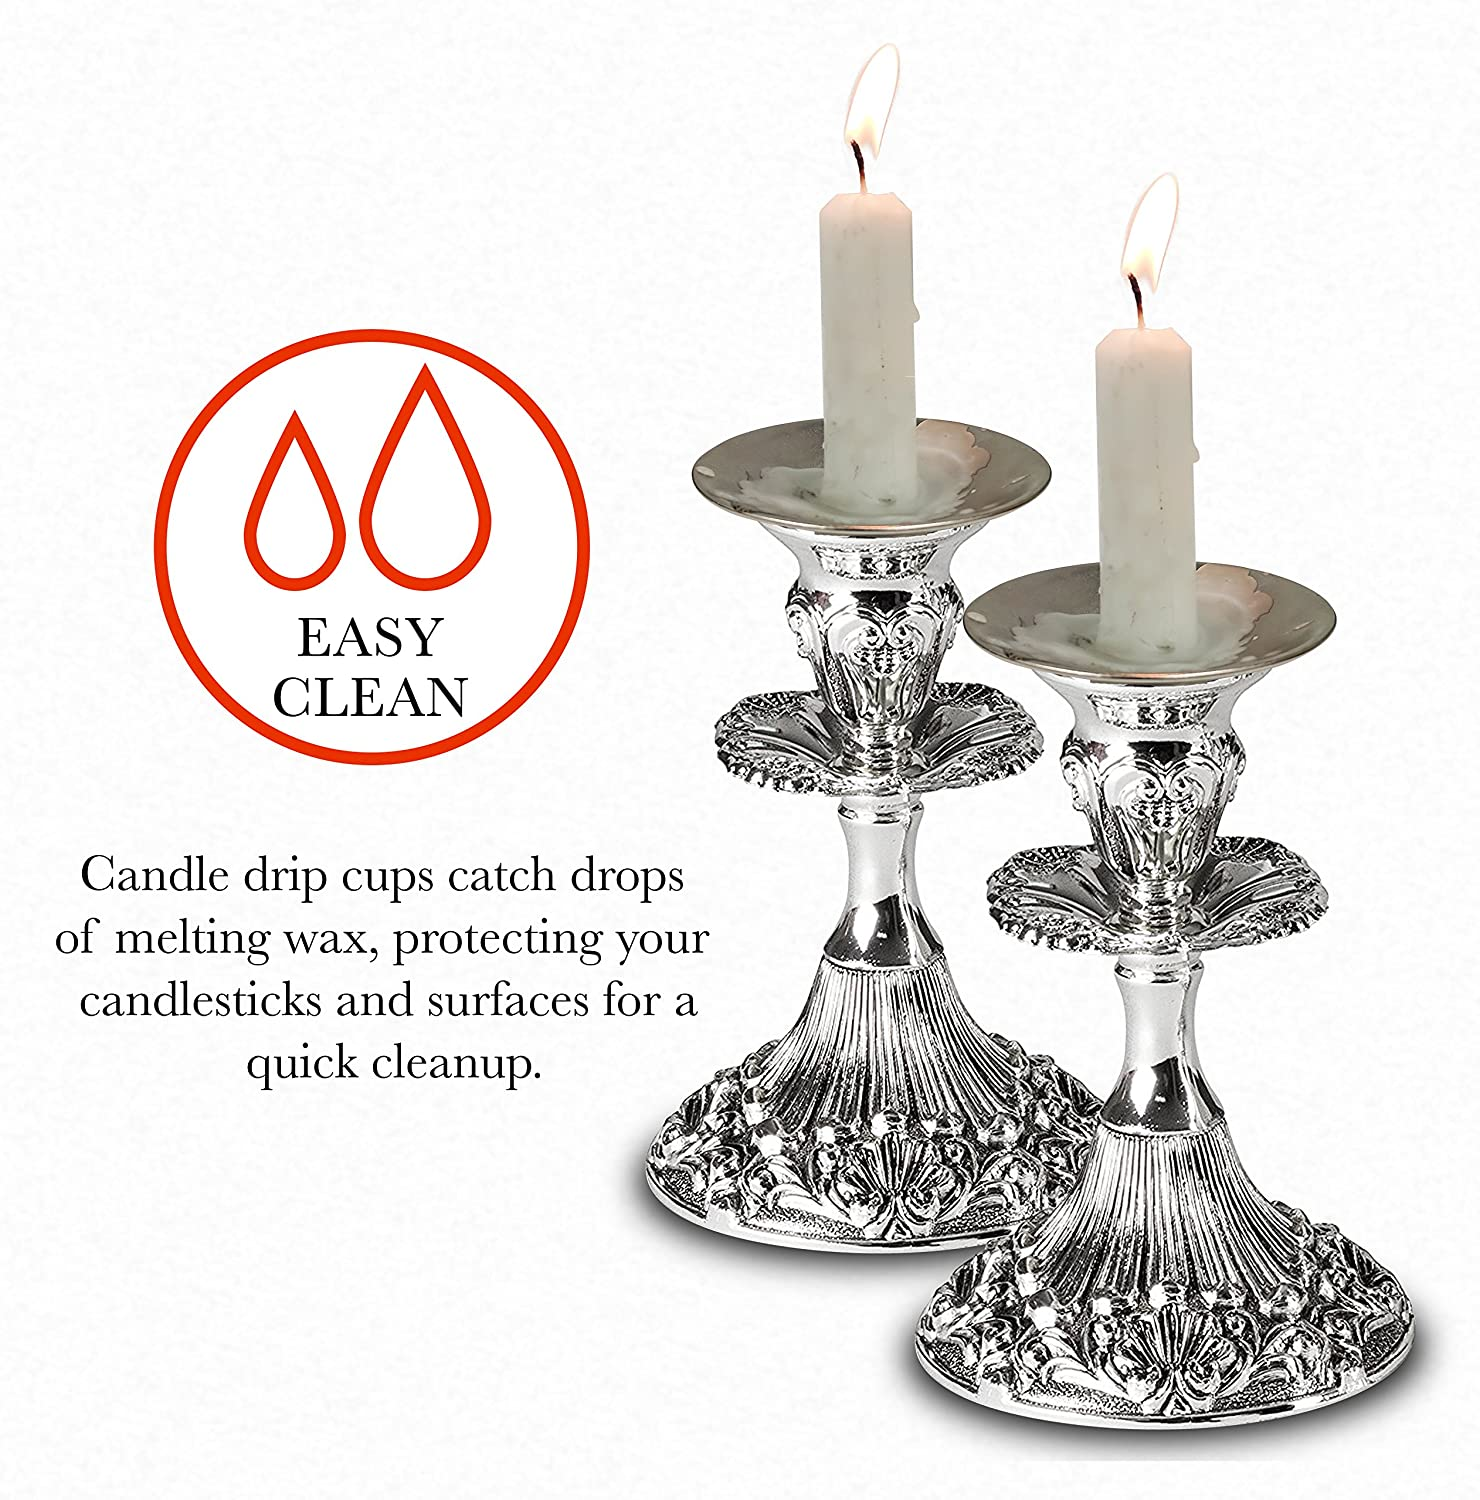 Ner Mitzvah Reusable Metal Candlestick Liners and Drip Guards 2 Pack Medium Nickel Plated Candle Holder Protector Bobeches Silver